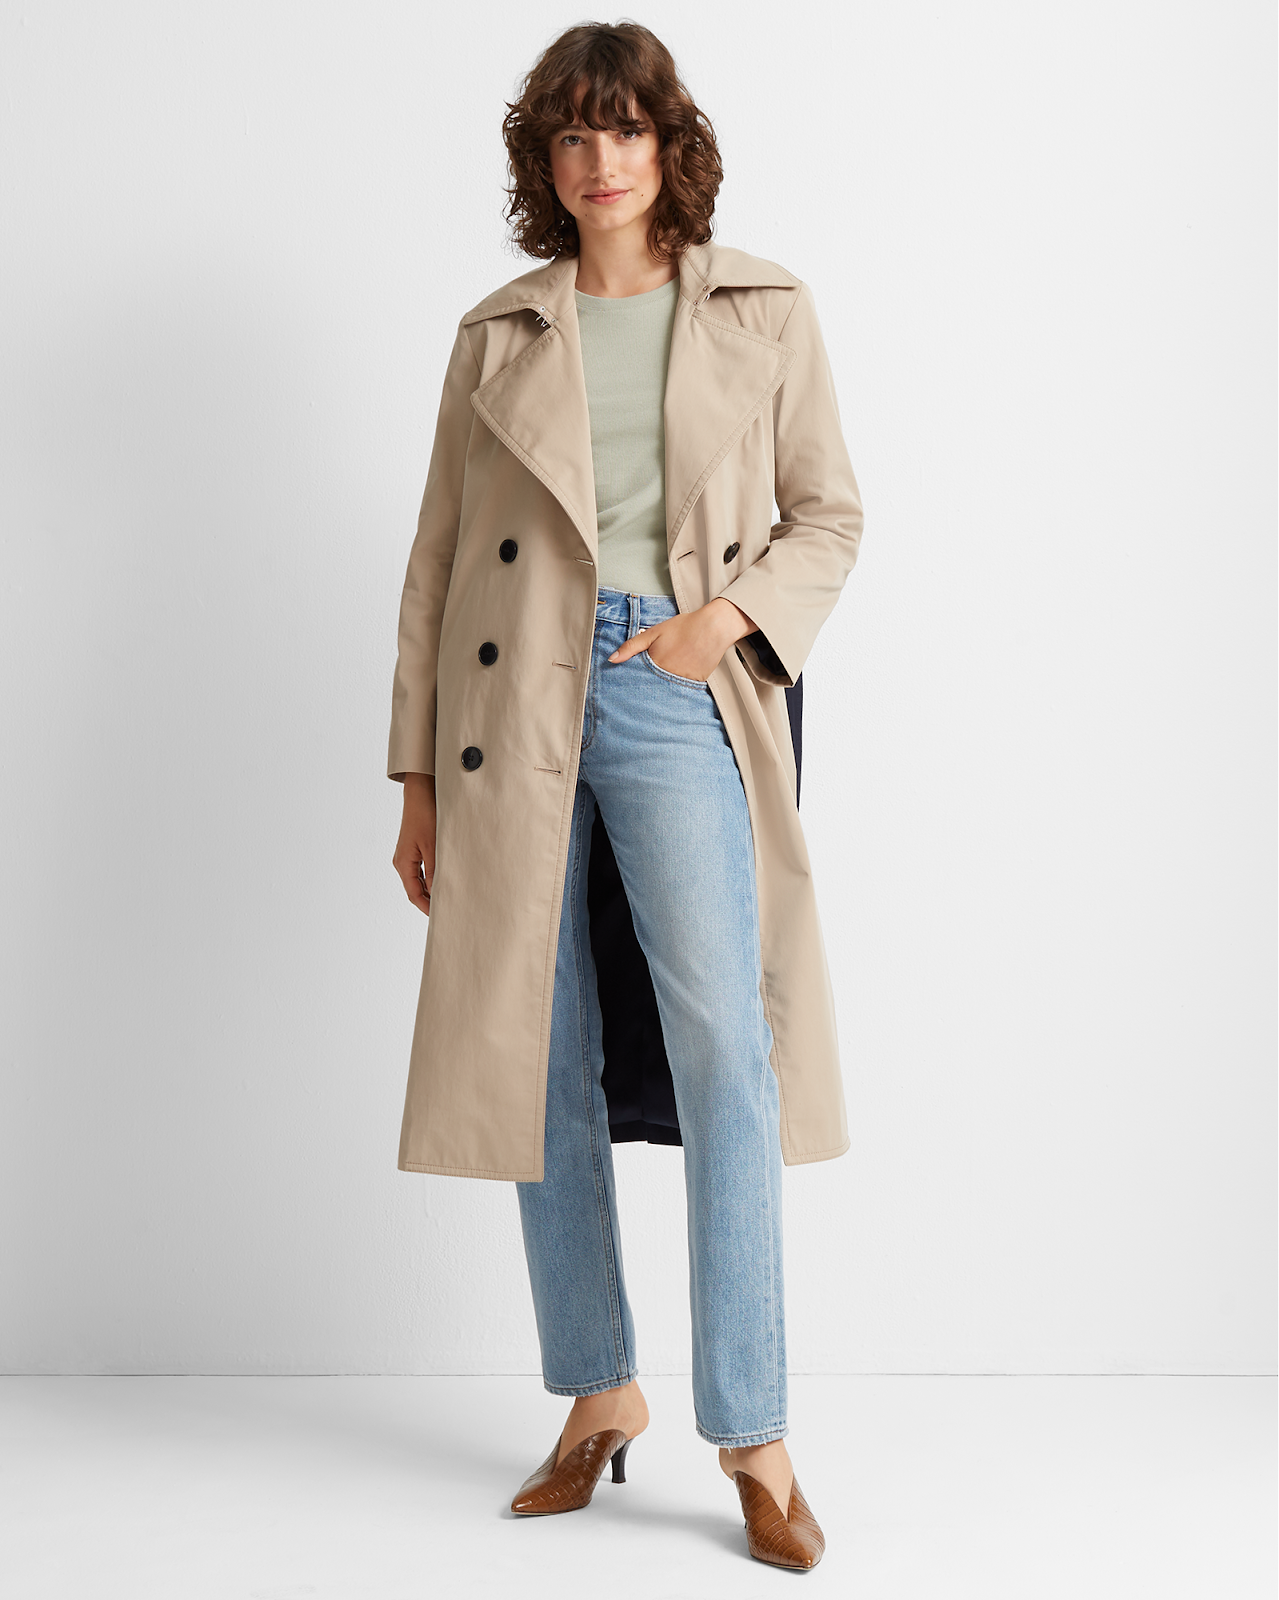 Fall Outfit Idea: Colorblock Trench Coat, Tee, Jeans, and Mule Heels